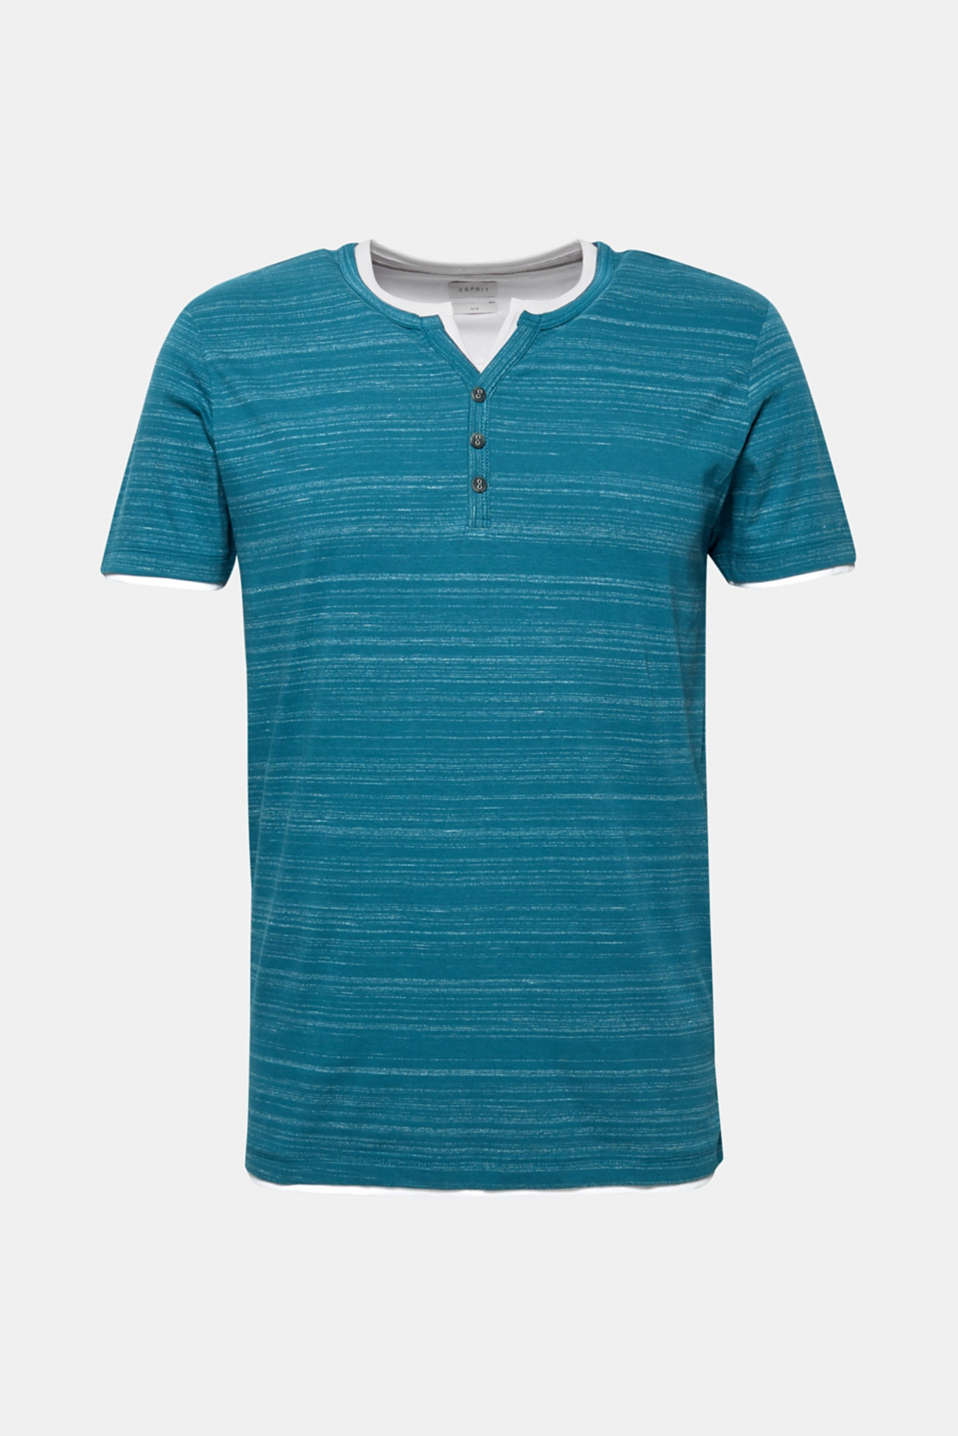 T-shirt with a layered look, made of jersey, PETROL BLUE, detail image number 5